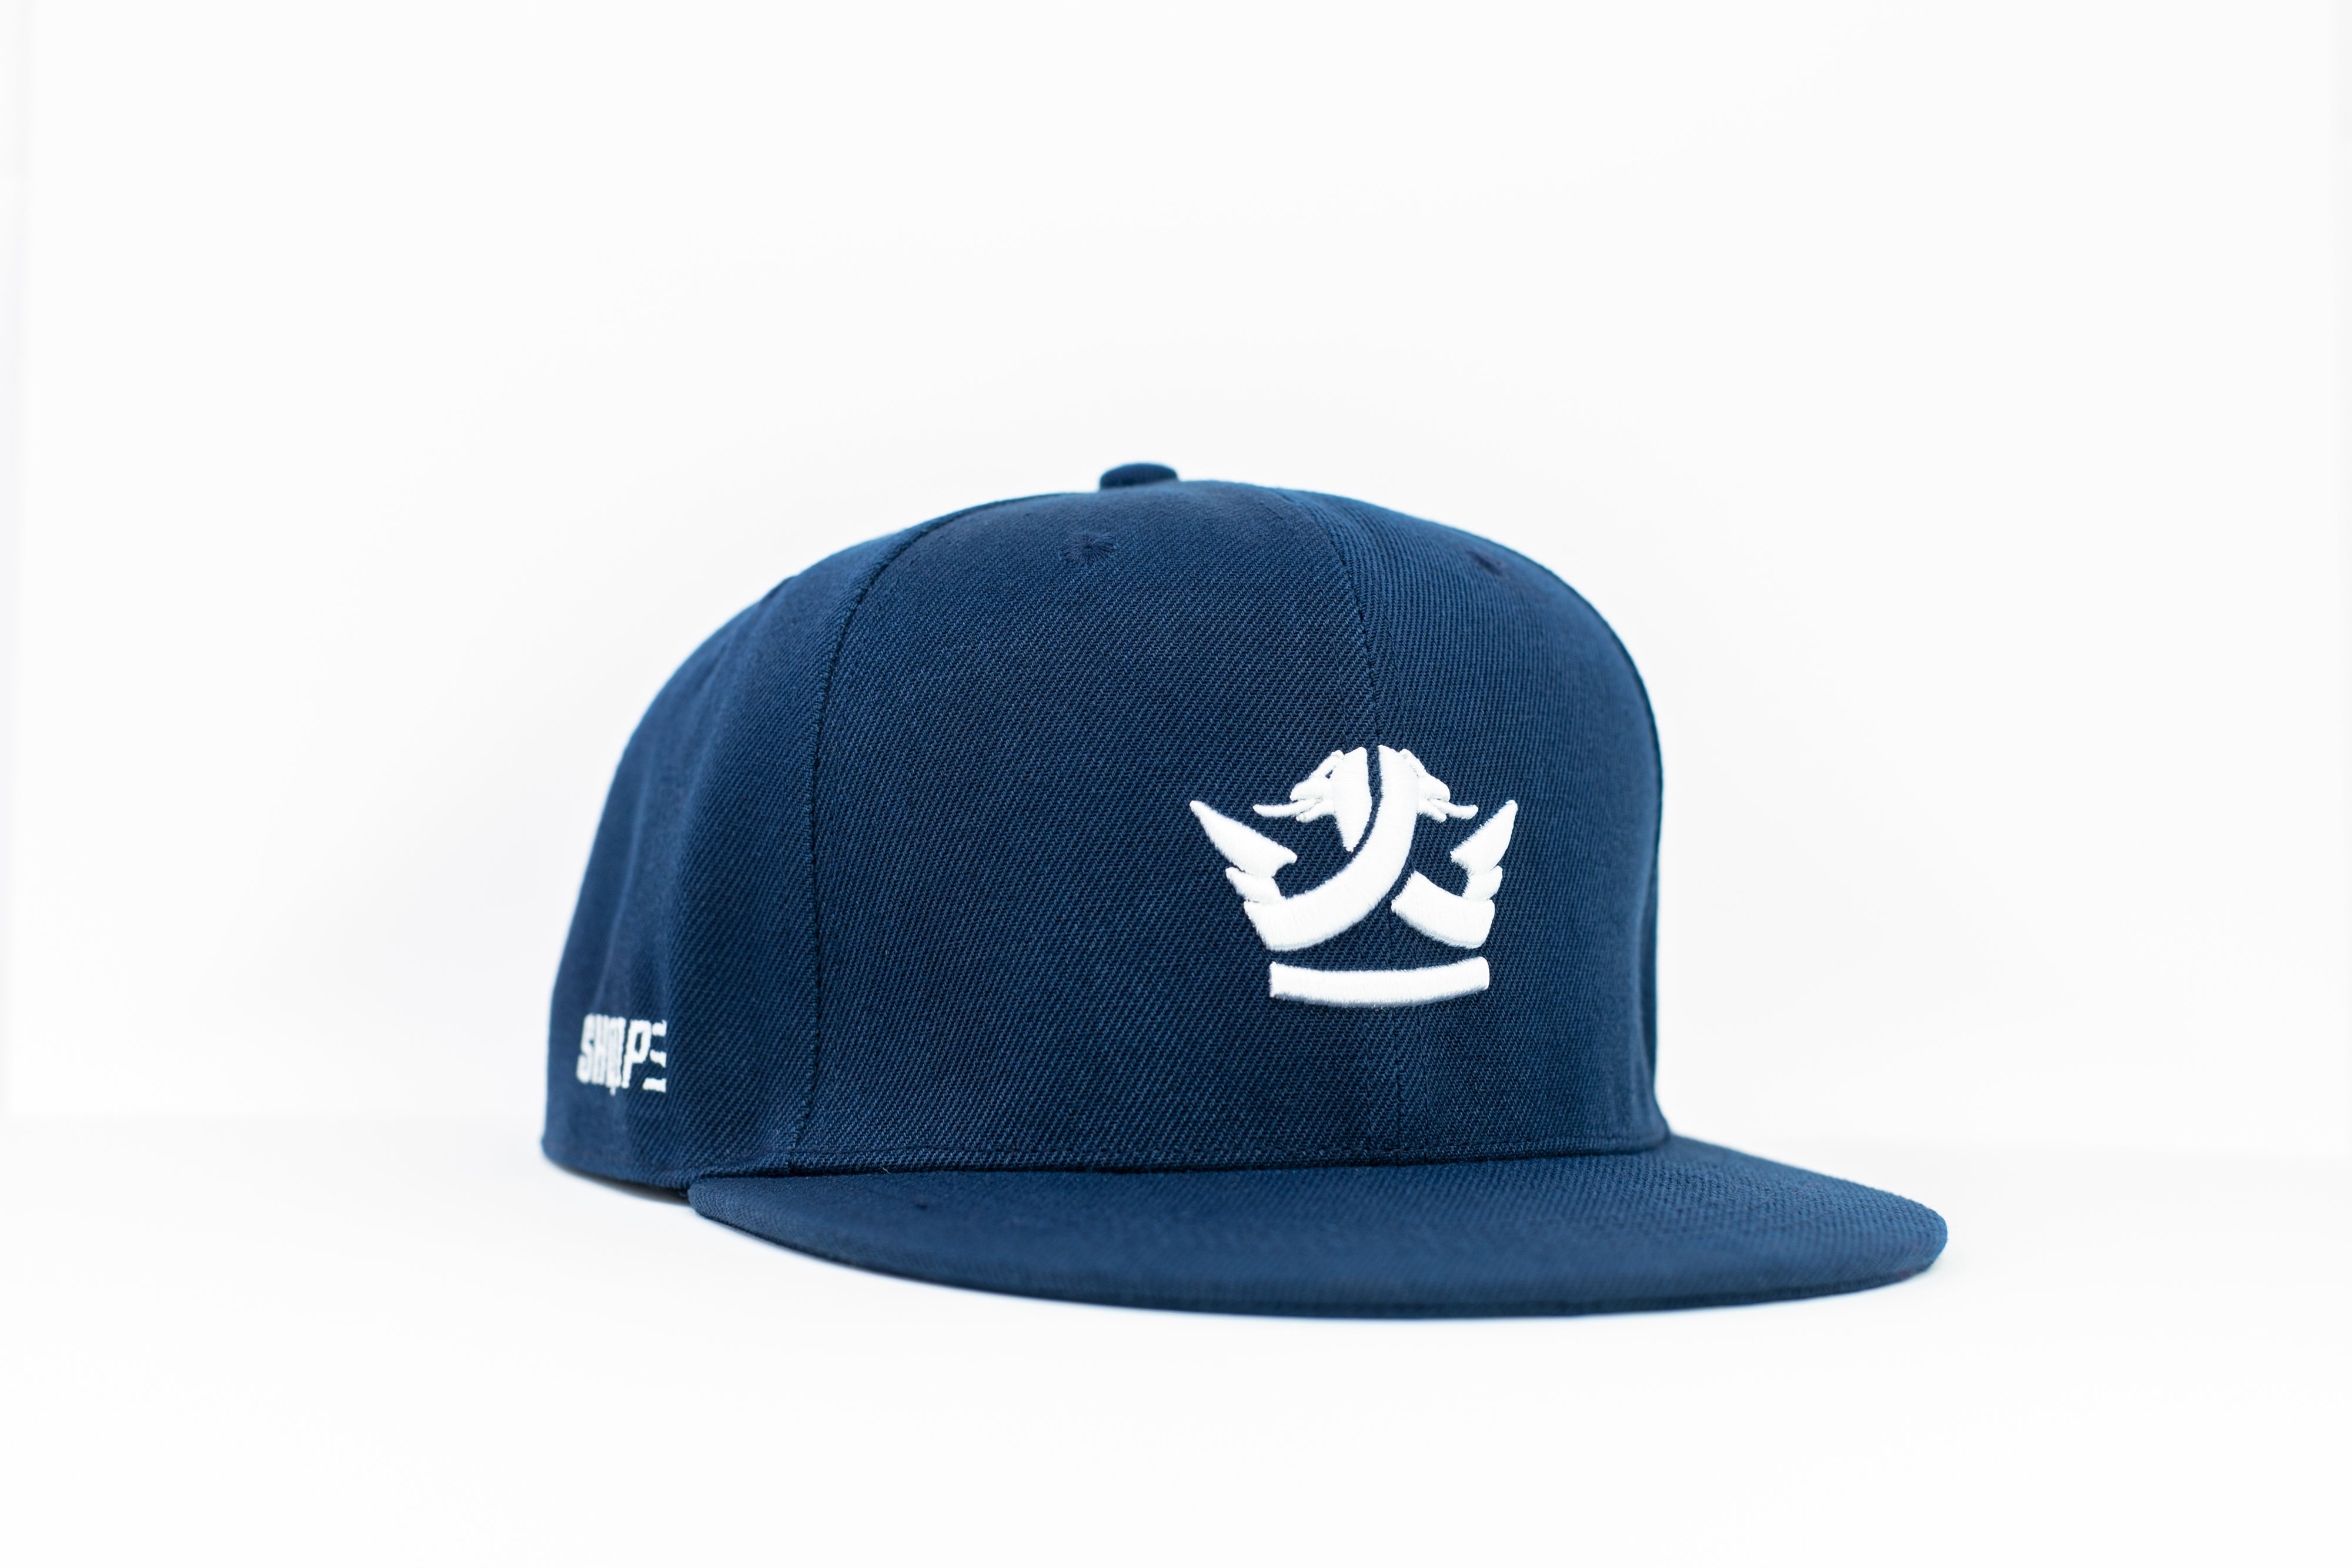 1st Edition Shq1pe Snapback Navy Blue/White